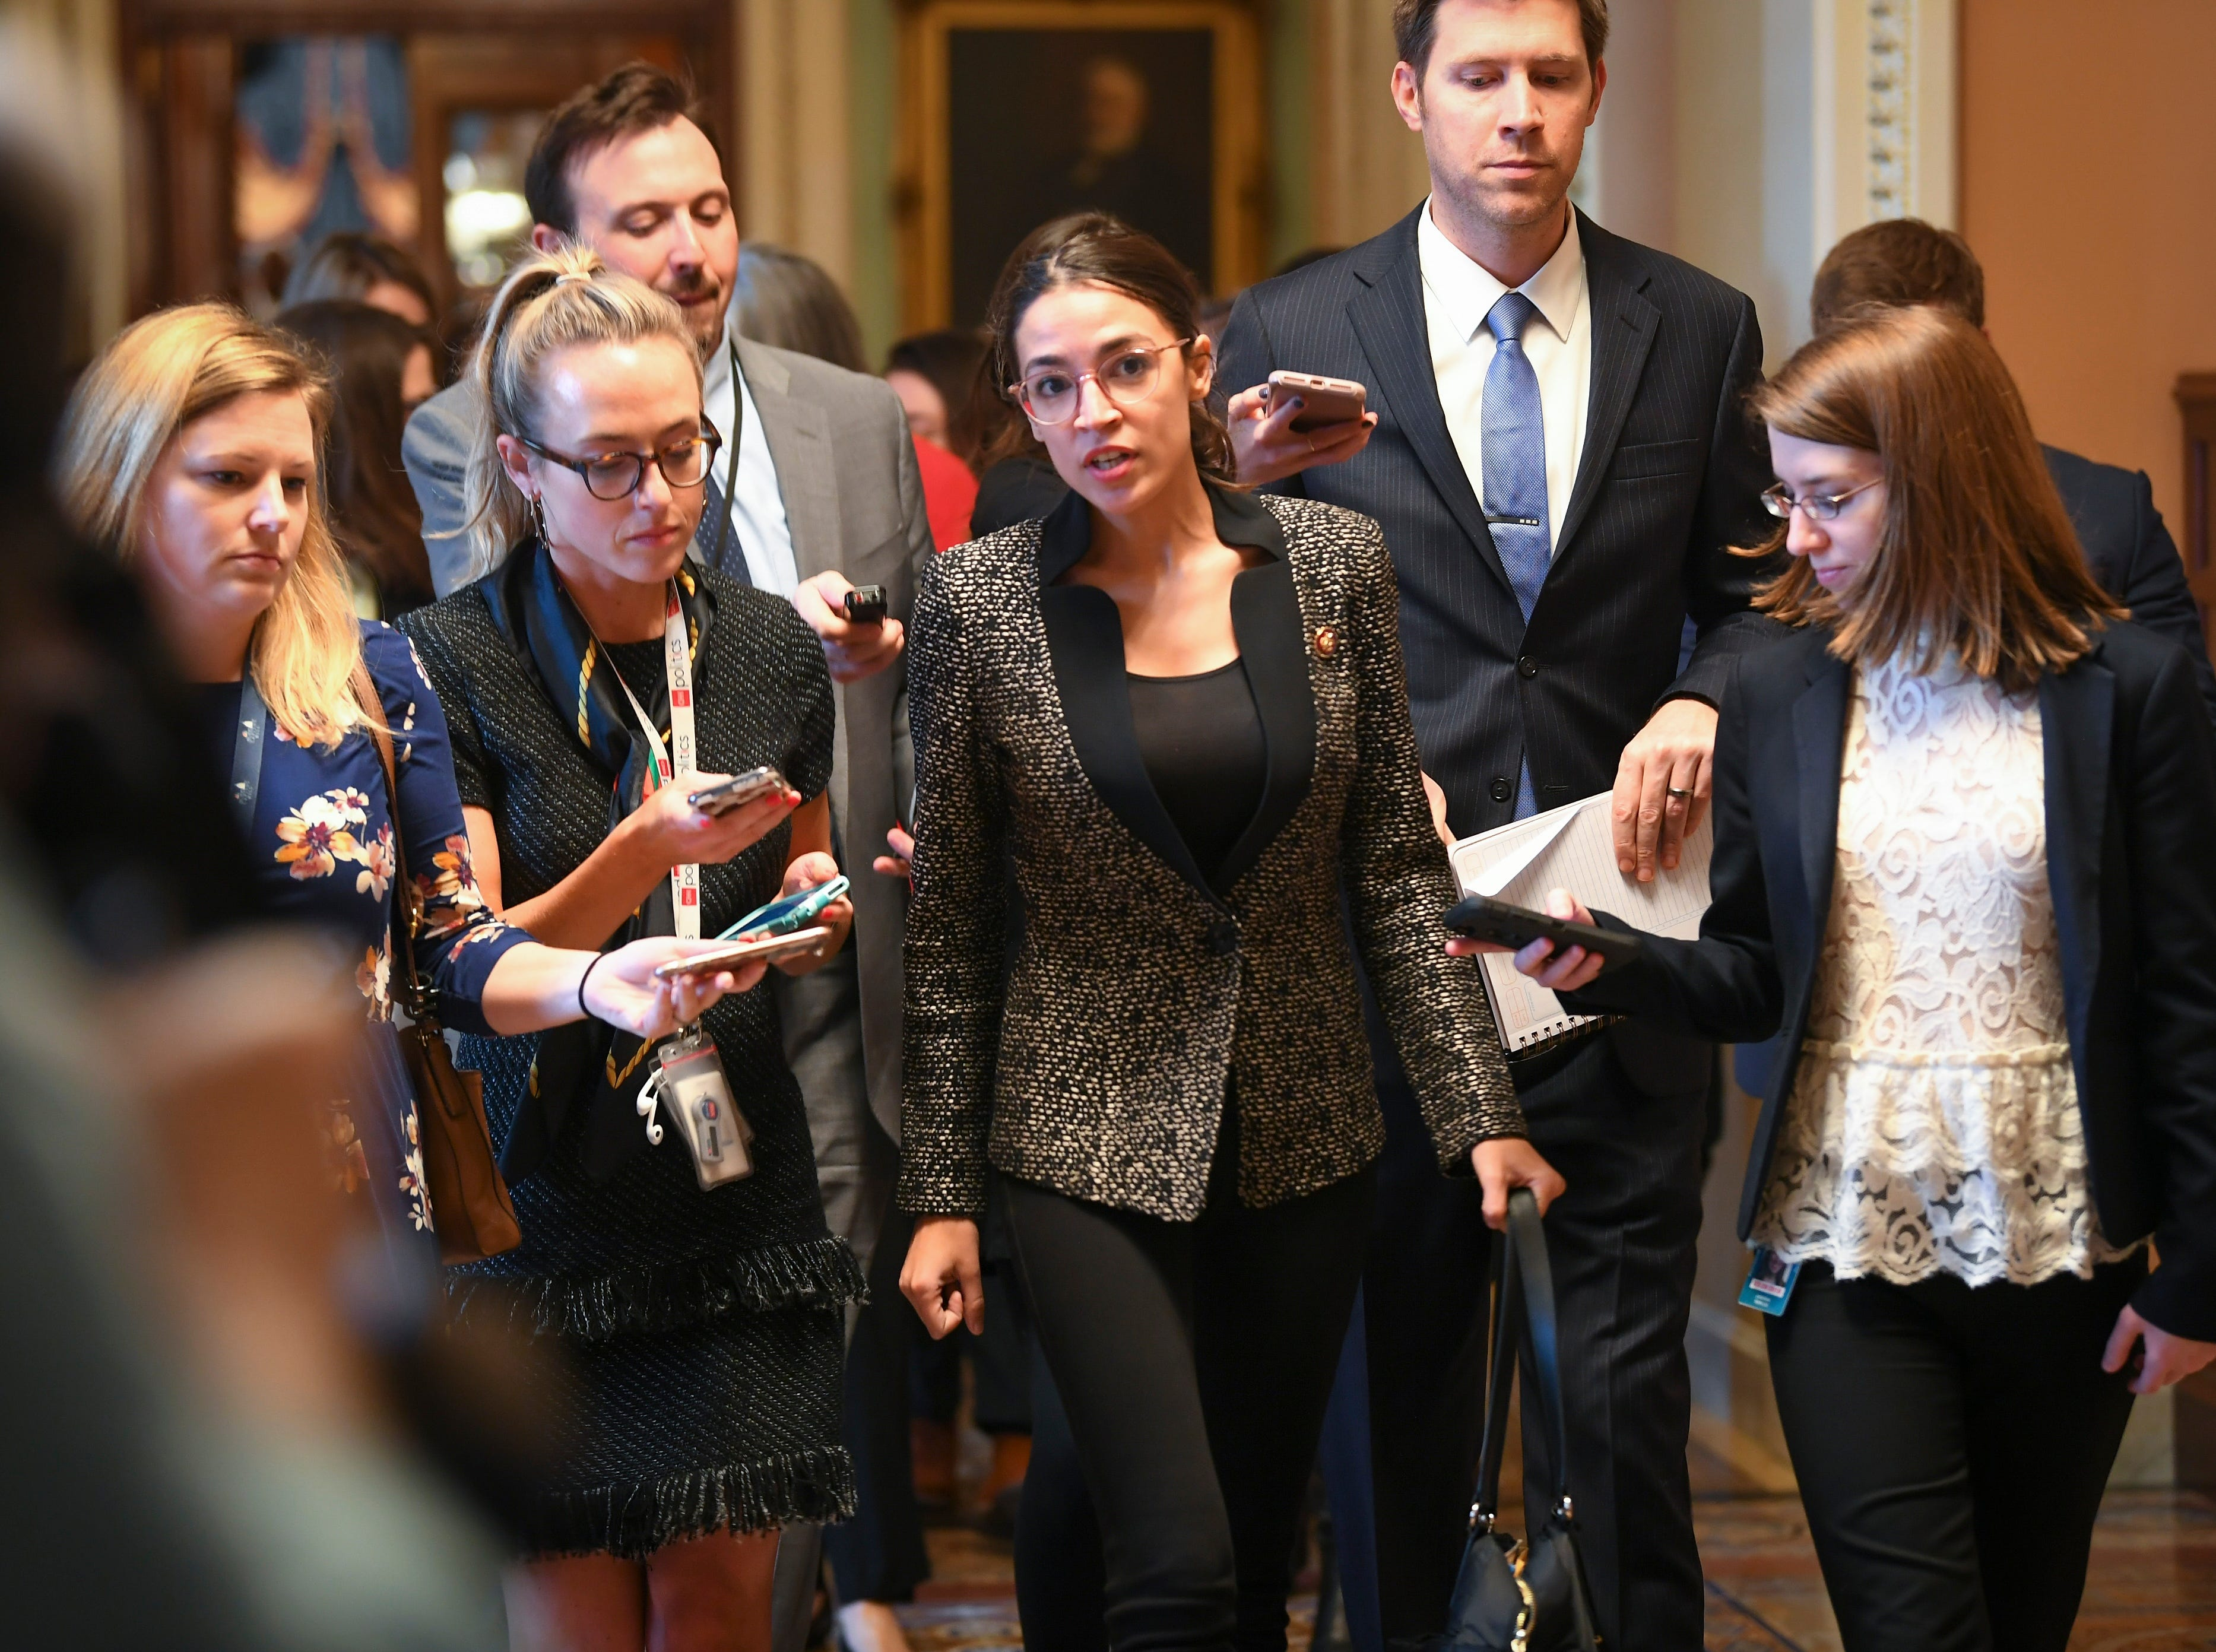 Rep. Alexandria Ocasio-Cortez (D-NY) talks to the media as she and other House Democrat members leave the Senate Chambers after the Senate voted to reject a pair of dueling bills Thursday to fund the federal government and end the longest partial government shutdown in history.